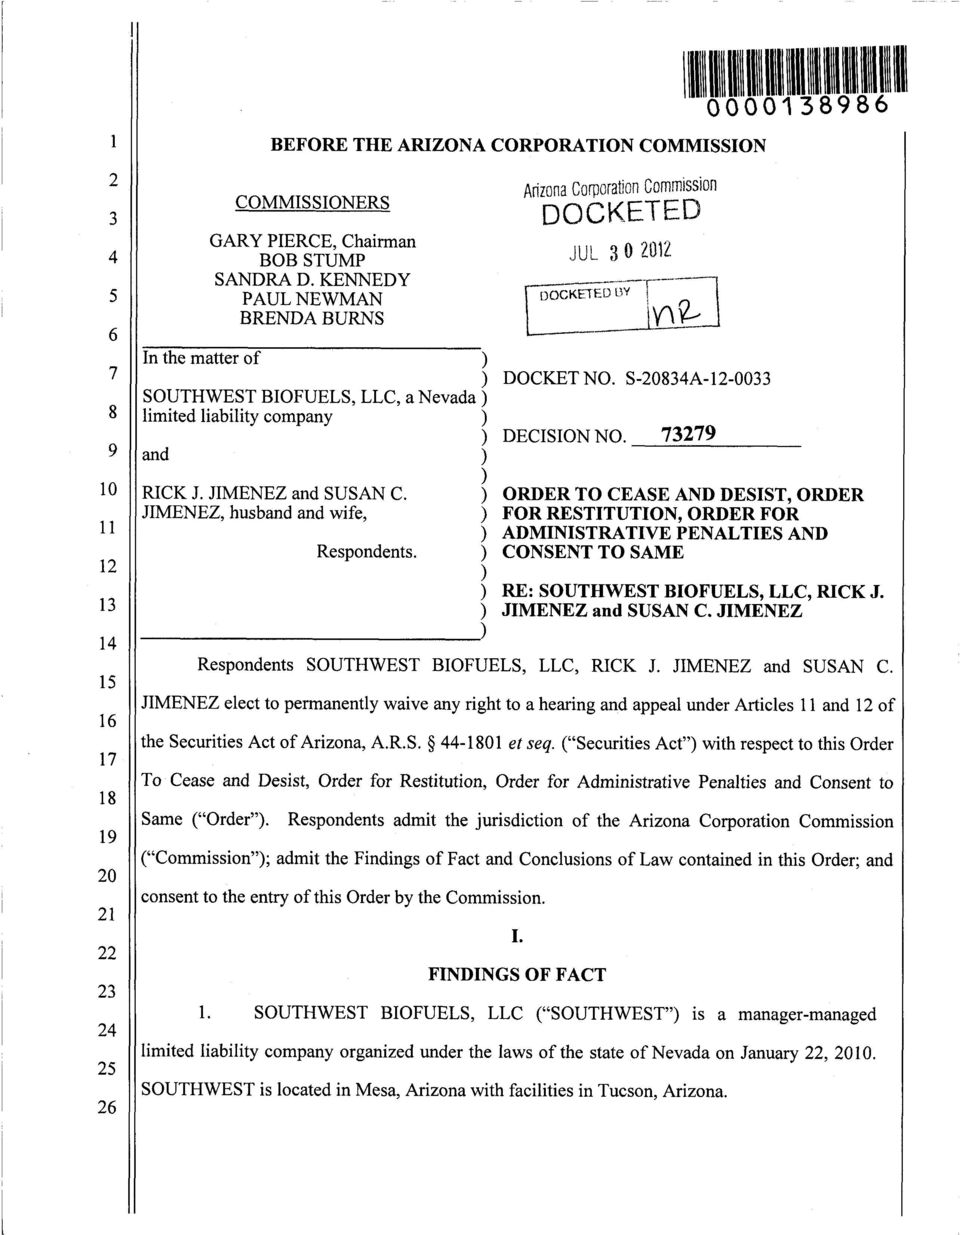 ) ORDER TO CEASE AND DESST, ORDER MENEZ, husband and wife, ) FOR RESTTUTON, ORDER FOR ) ADMNSTRATVE PENALTES AND Respondents. ) CONSENT TO SAME ) ) RE: SOUTHWEST BOFUELS, LLC, RCK J.